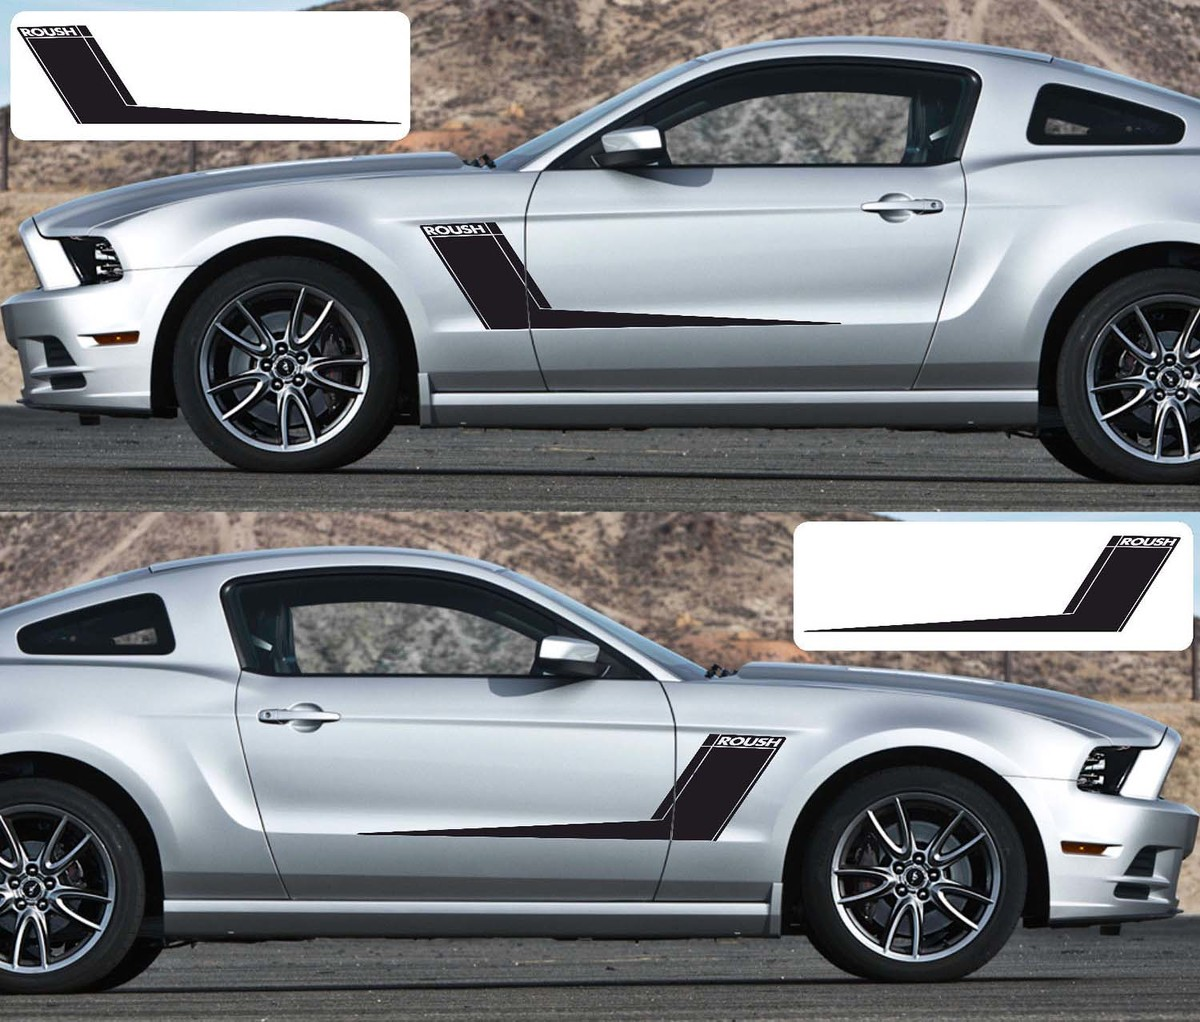 2x Ford Mustang Side Roush Vinyl Decals Graphics Rally Stripe Kit